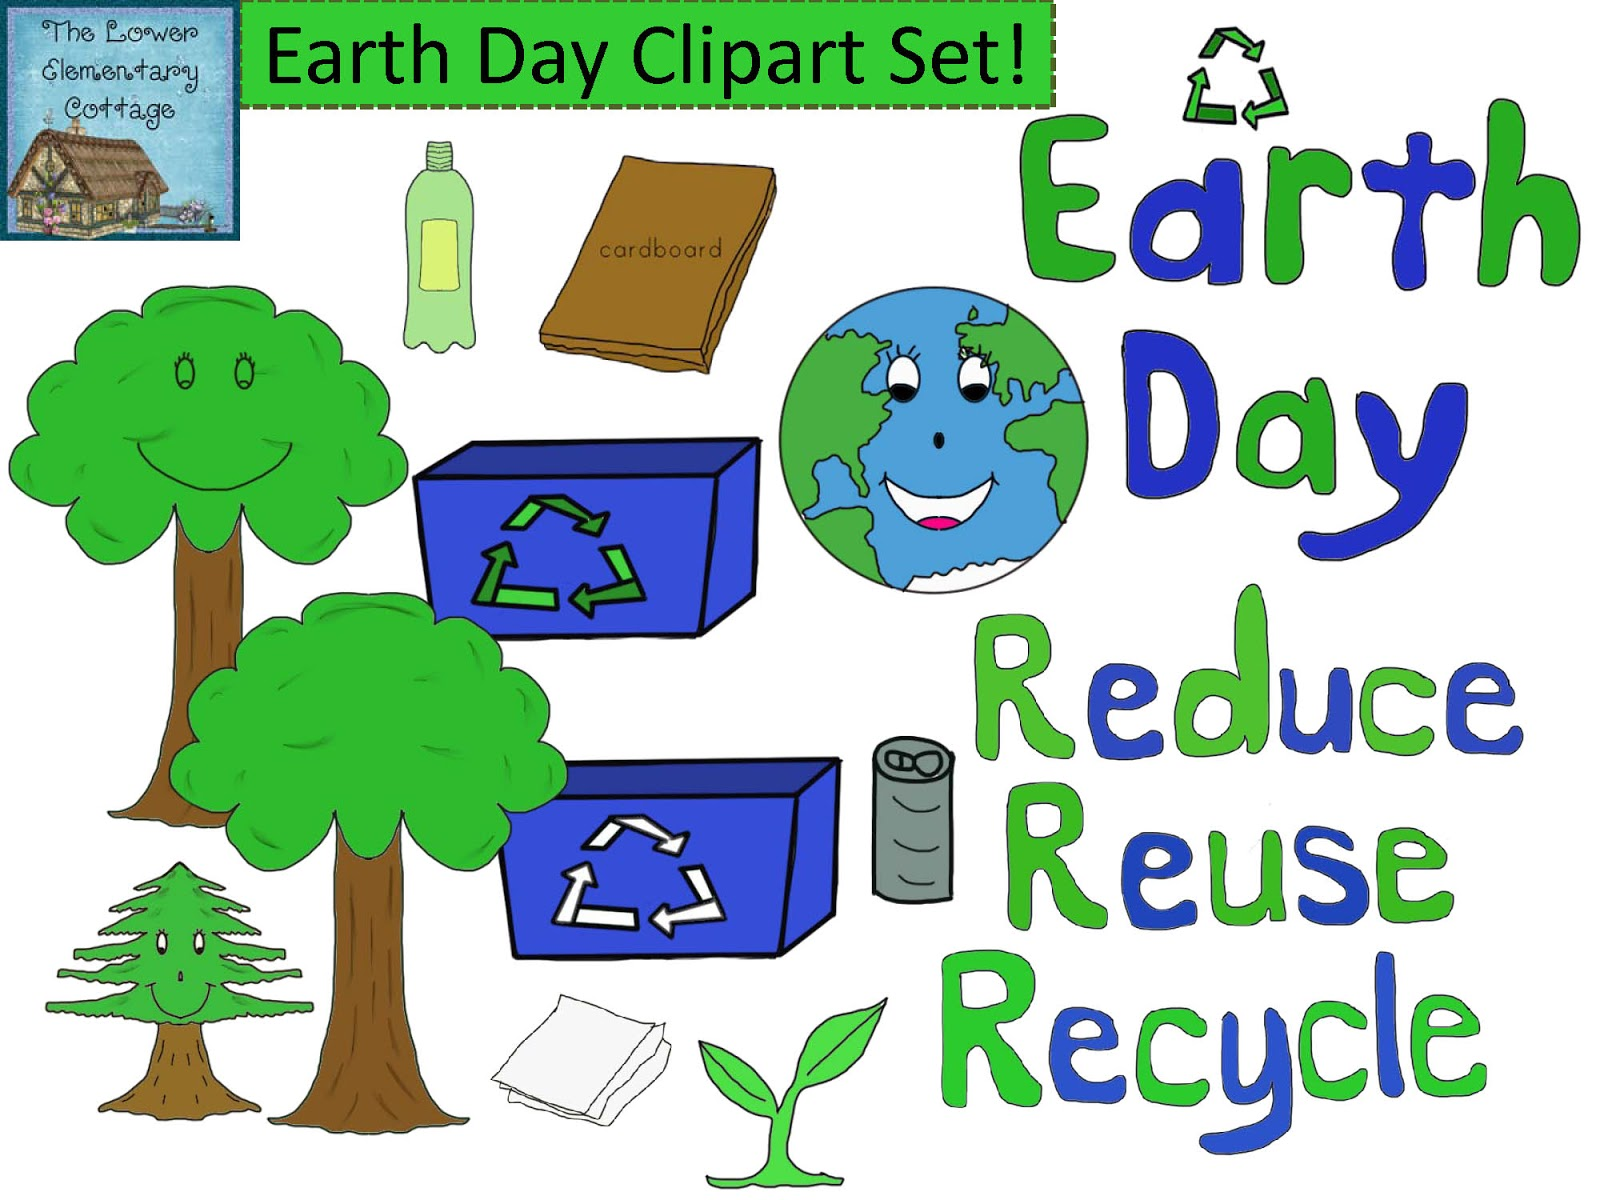 Free Earth Day Cliparts, Download Free Clip Art, Free Clip Art on.